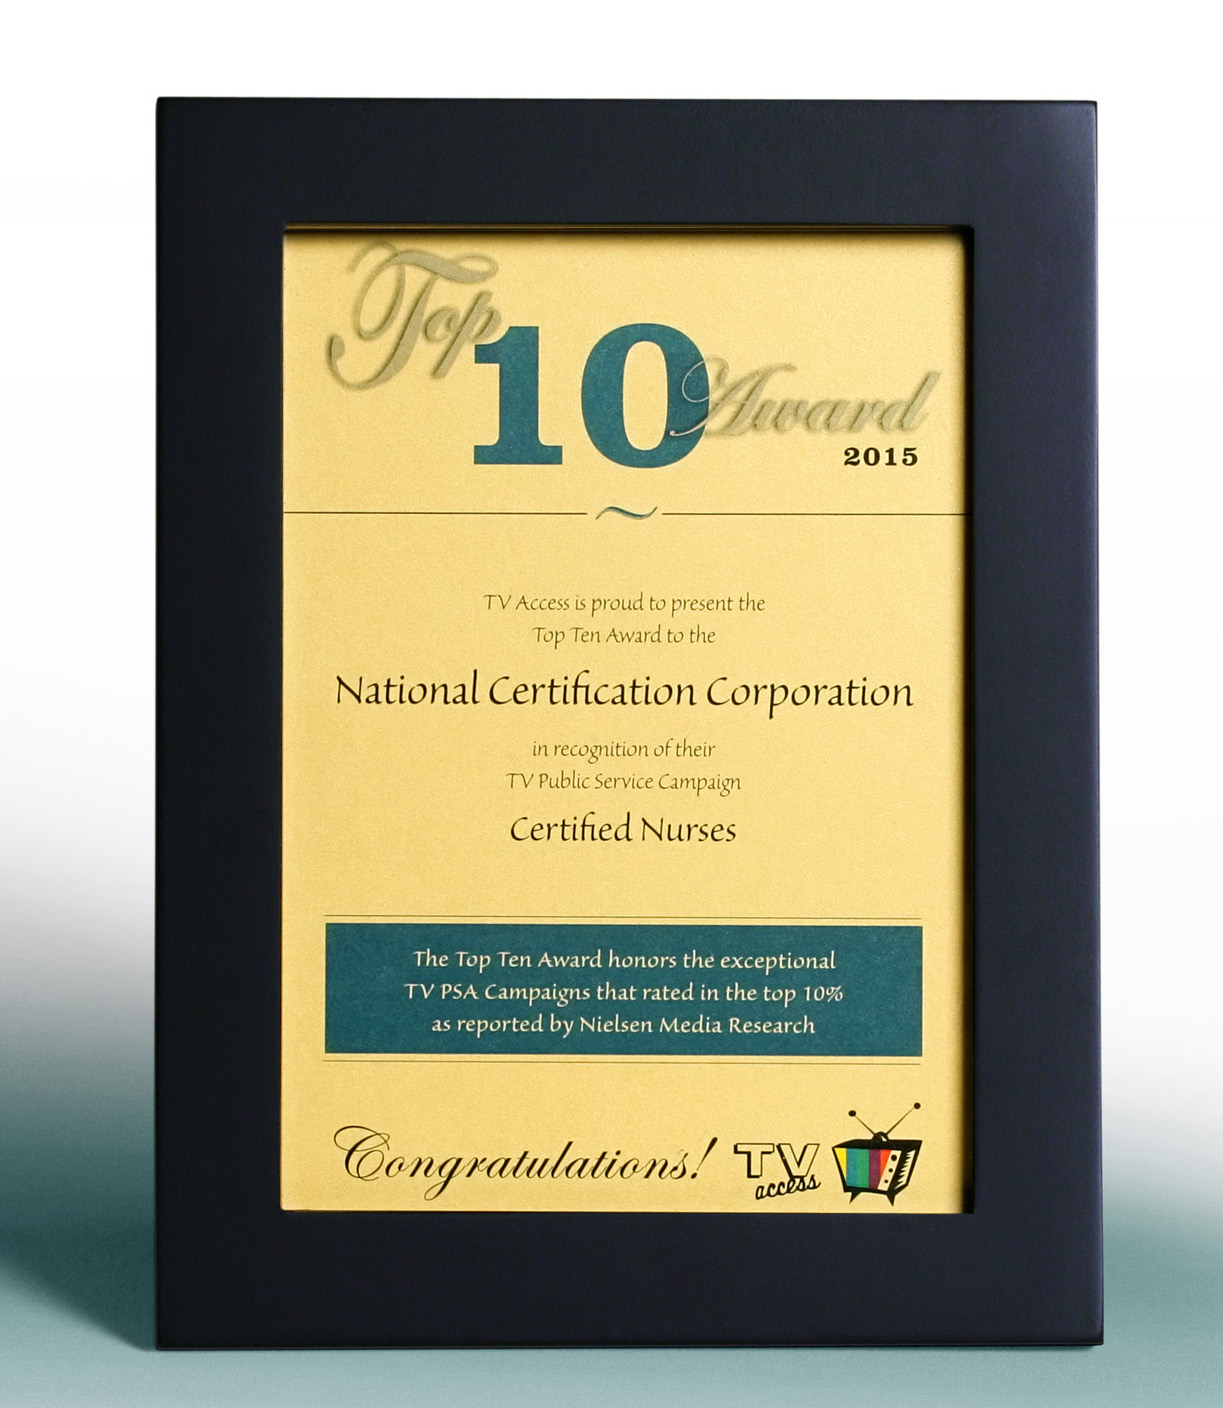 Certified nurses are everywhere campaign recognized as a top psa since the launch of the campaign in february 2014 the certified nurses are everywhere campaign has received over 362 million impressions 1betcityfo Image collections